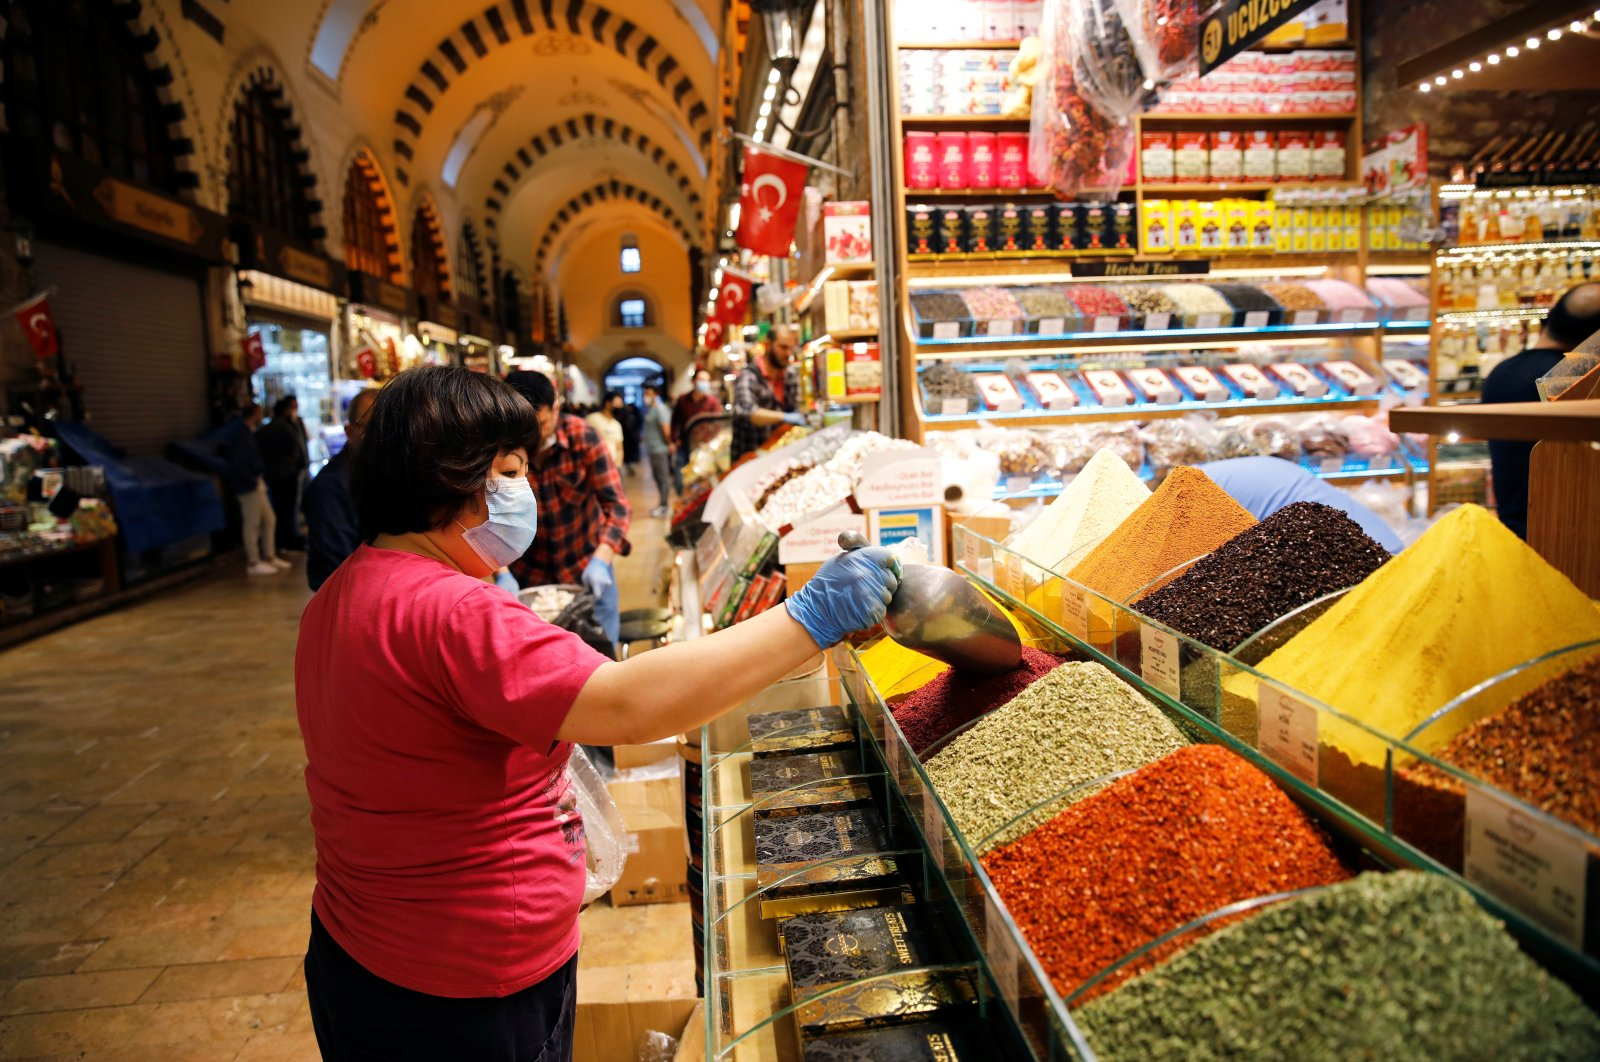 A vendor adds spice at a stall at the spice market, also known as the Egyptian Bazaar, as it reopened after weeks of closed doors amid the spread of COVID-19, Istanbul, Turkey, June 1, 2020. (Reuters Photo)